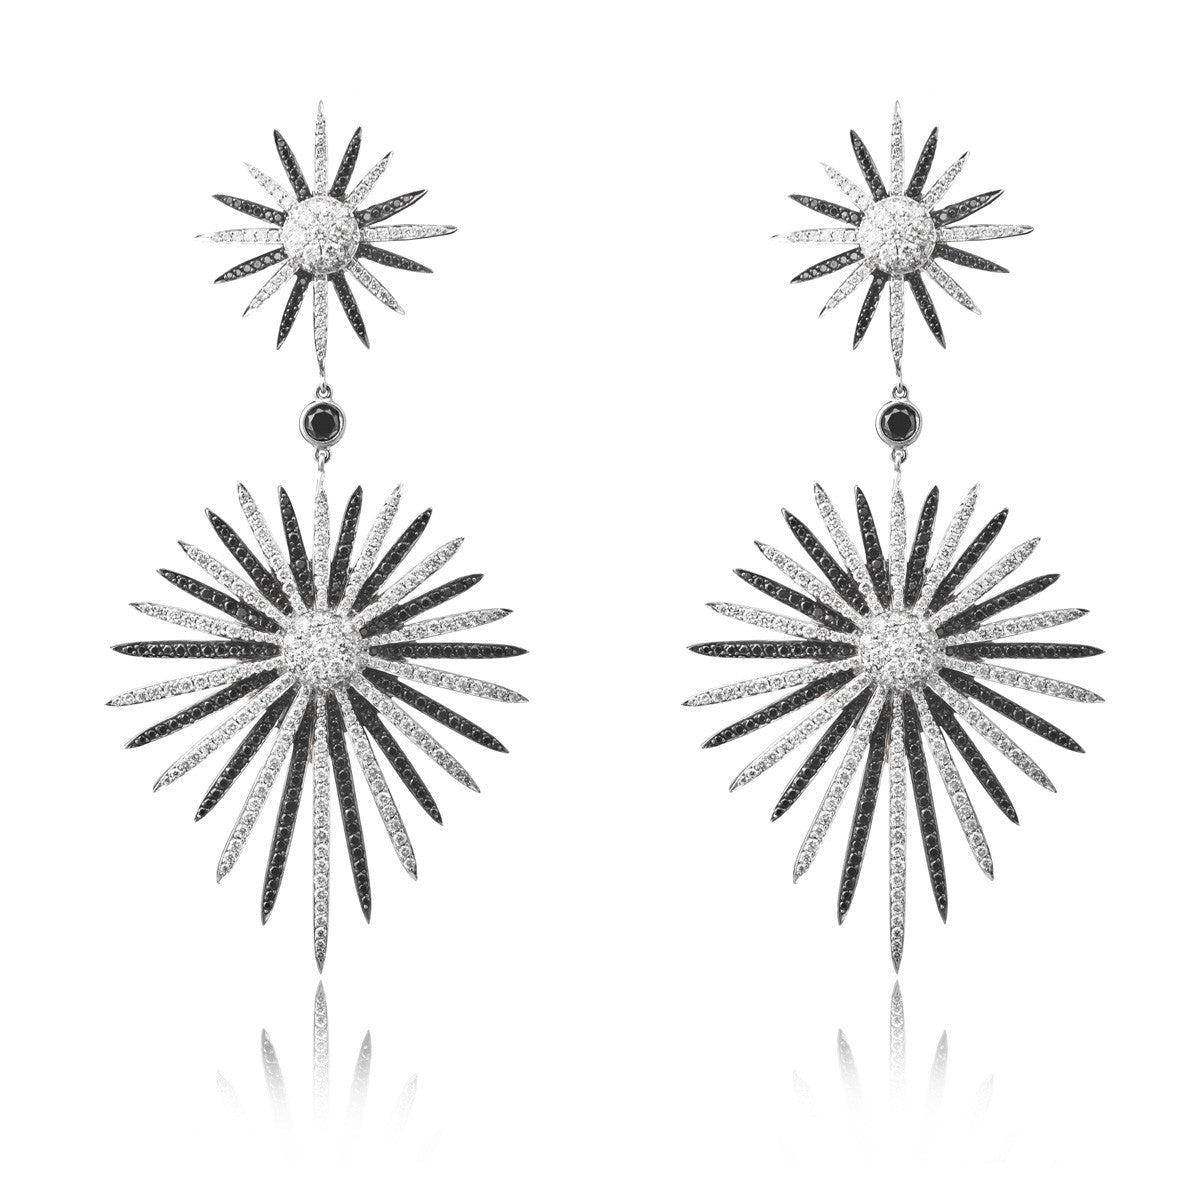 Duality Starburst Explosion Earring